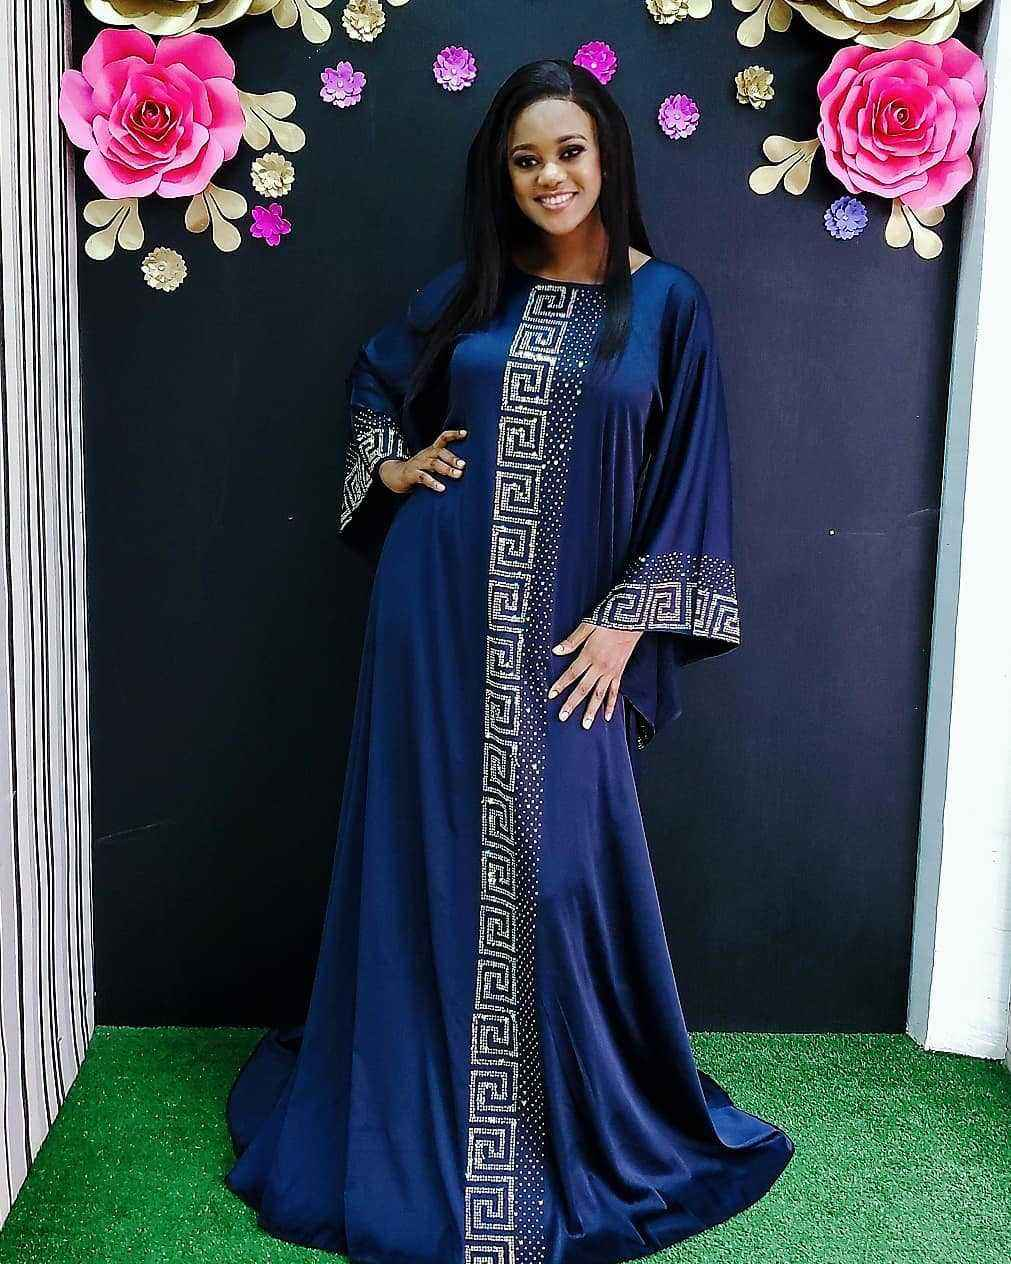 Wholesale Dubai Muslim Islamic Style Women Plus Size Robe Hot Drilling Soft Emulation Silk Women Abaya Dress